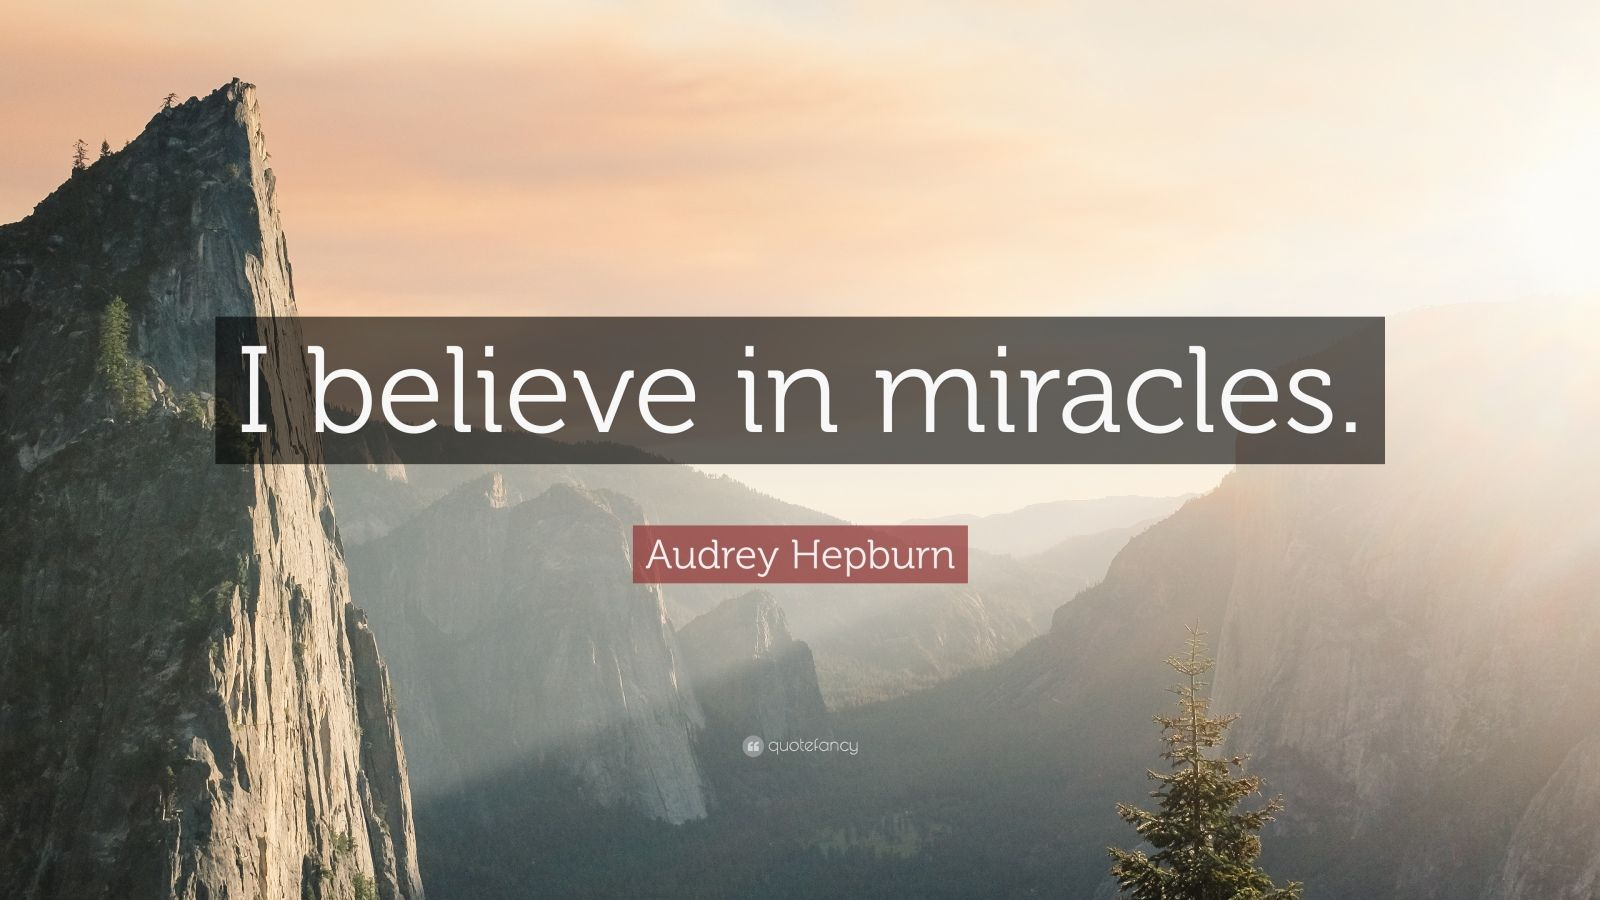 Hd Motivational Quotes Wallpapers Audrey Hepburn Quote I Believe In Miracles 10